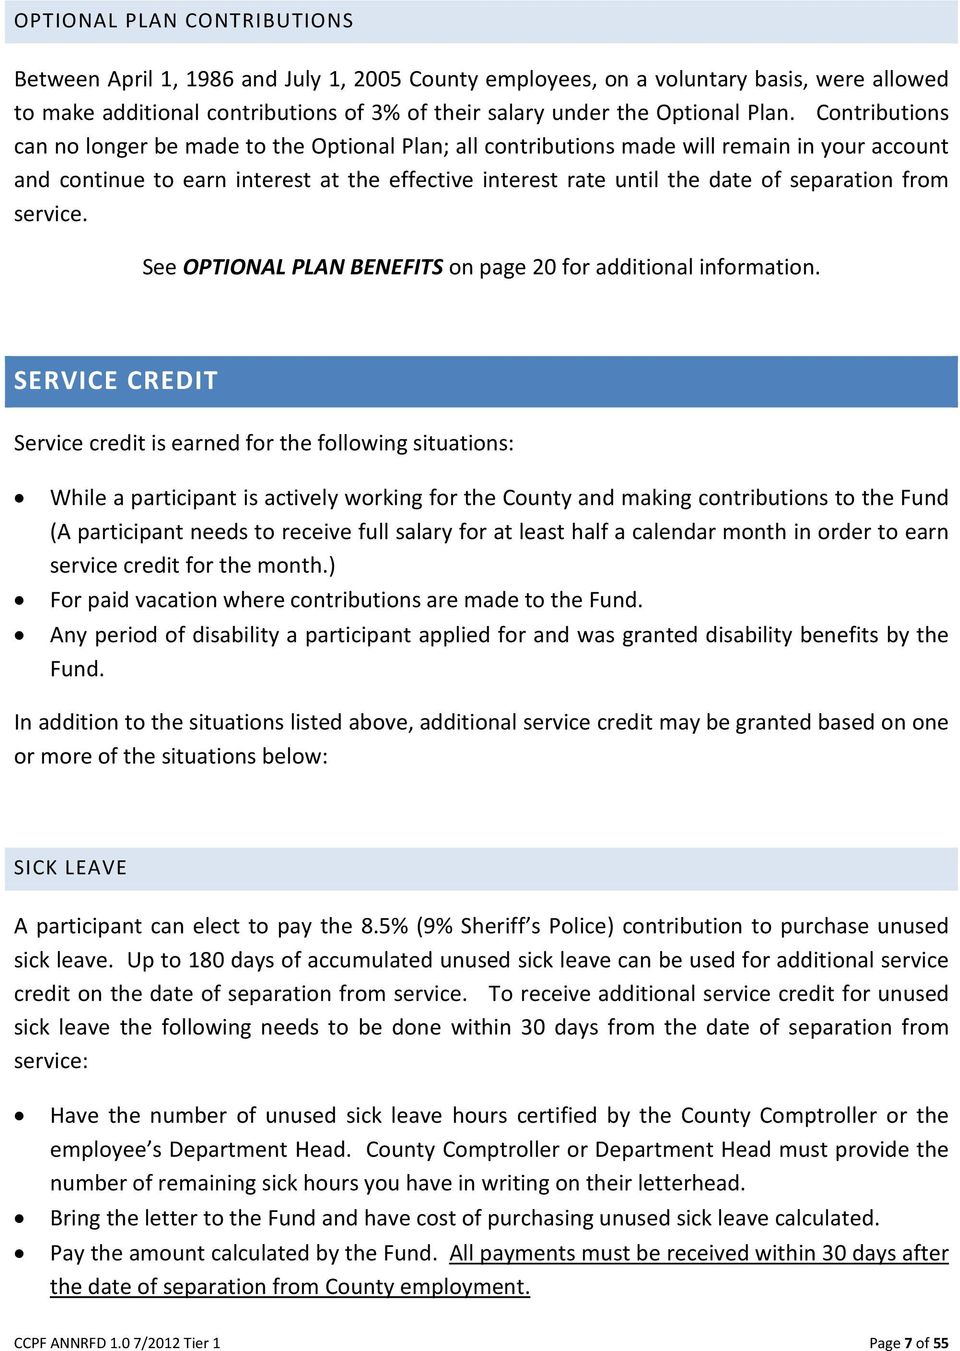 from service. See OPTIONAL PLAN BENEFITS on page 20 for additional information.